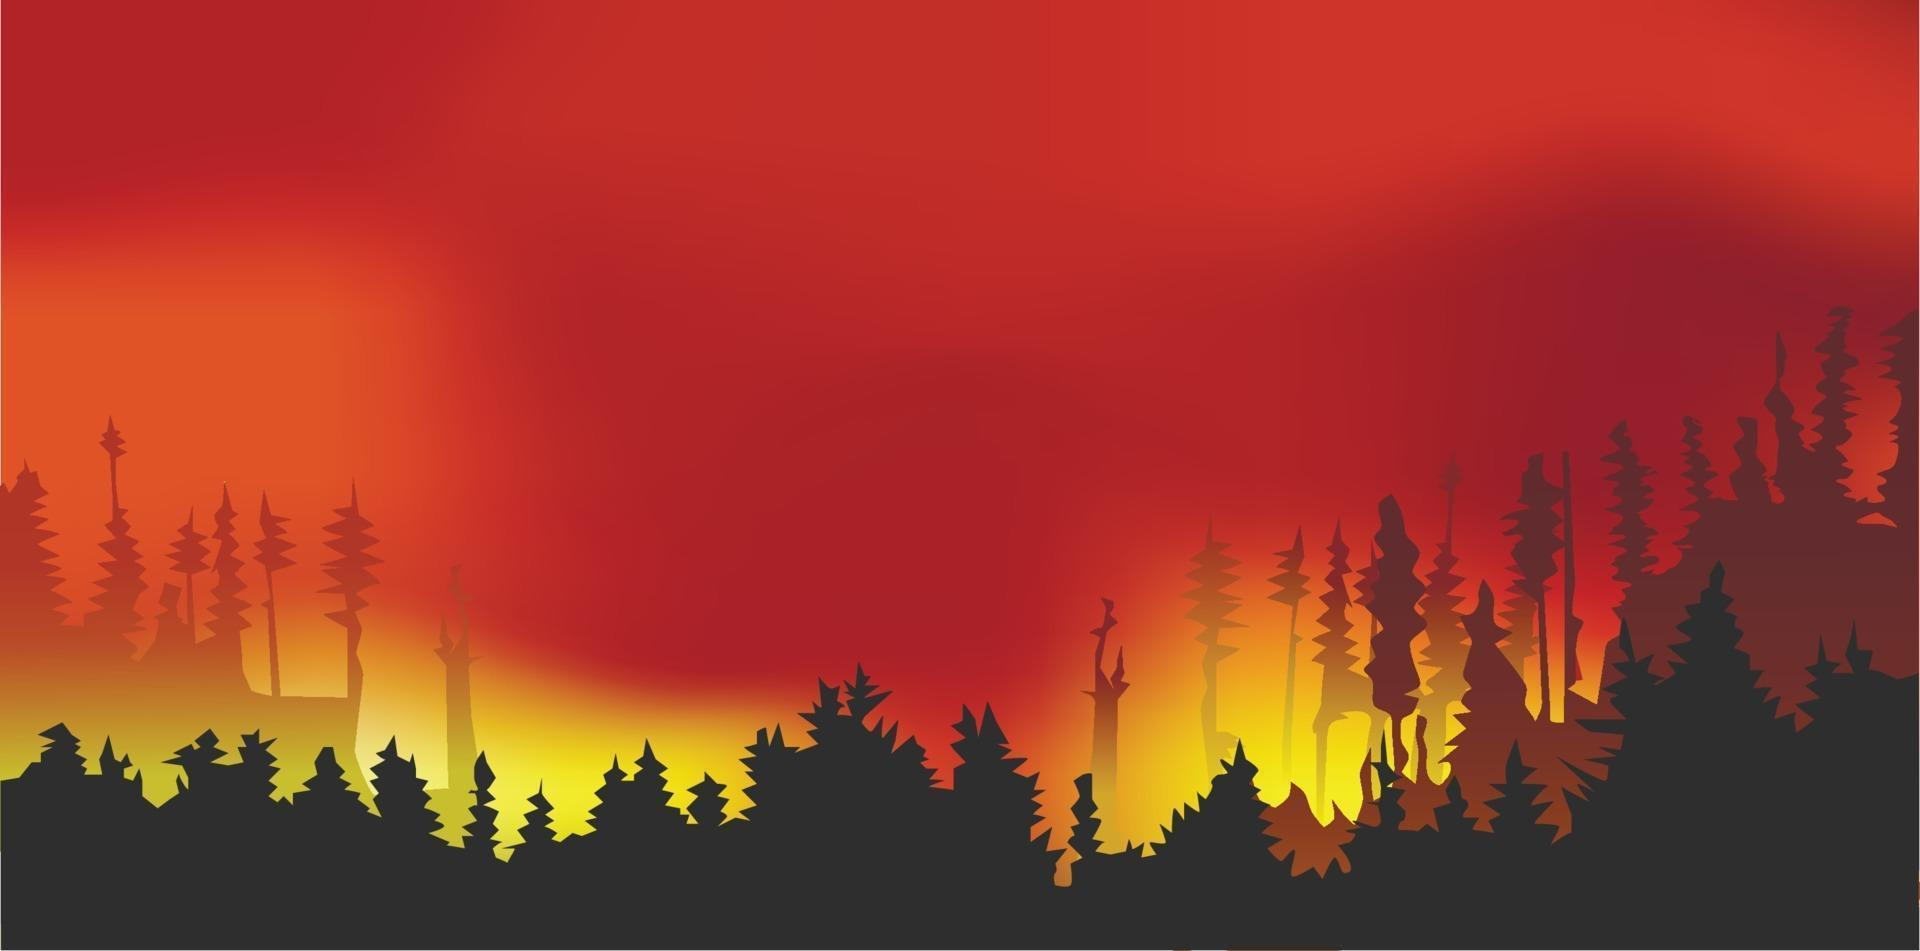 Forest fires, wildfire disaster illustration, burning trees, vector